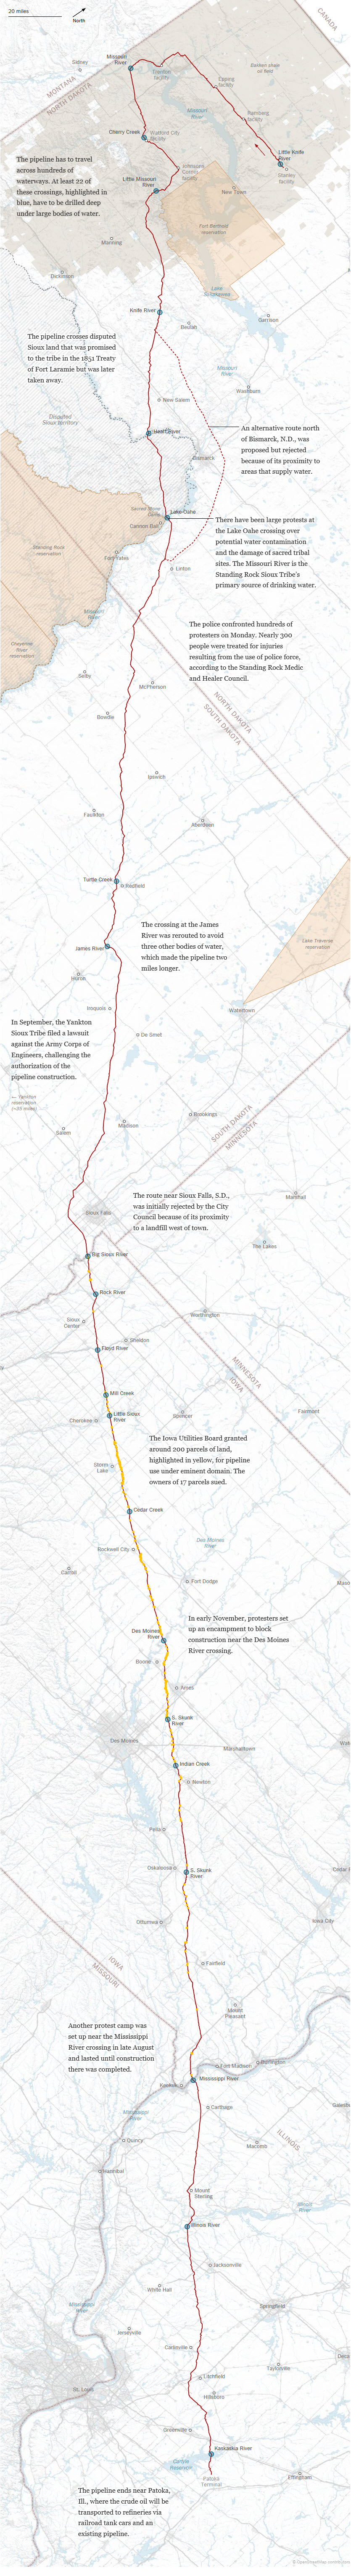 https://datavizblog.com/2016/11/29/nyt-graphic-the-dakota-access-pipeline/